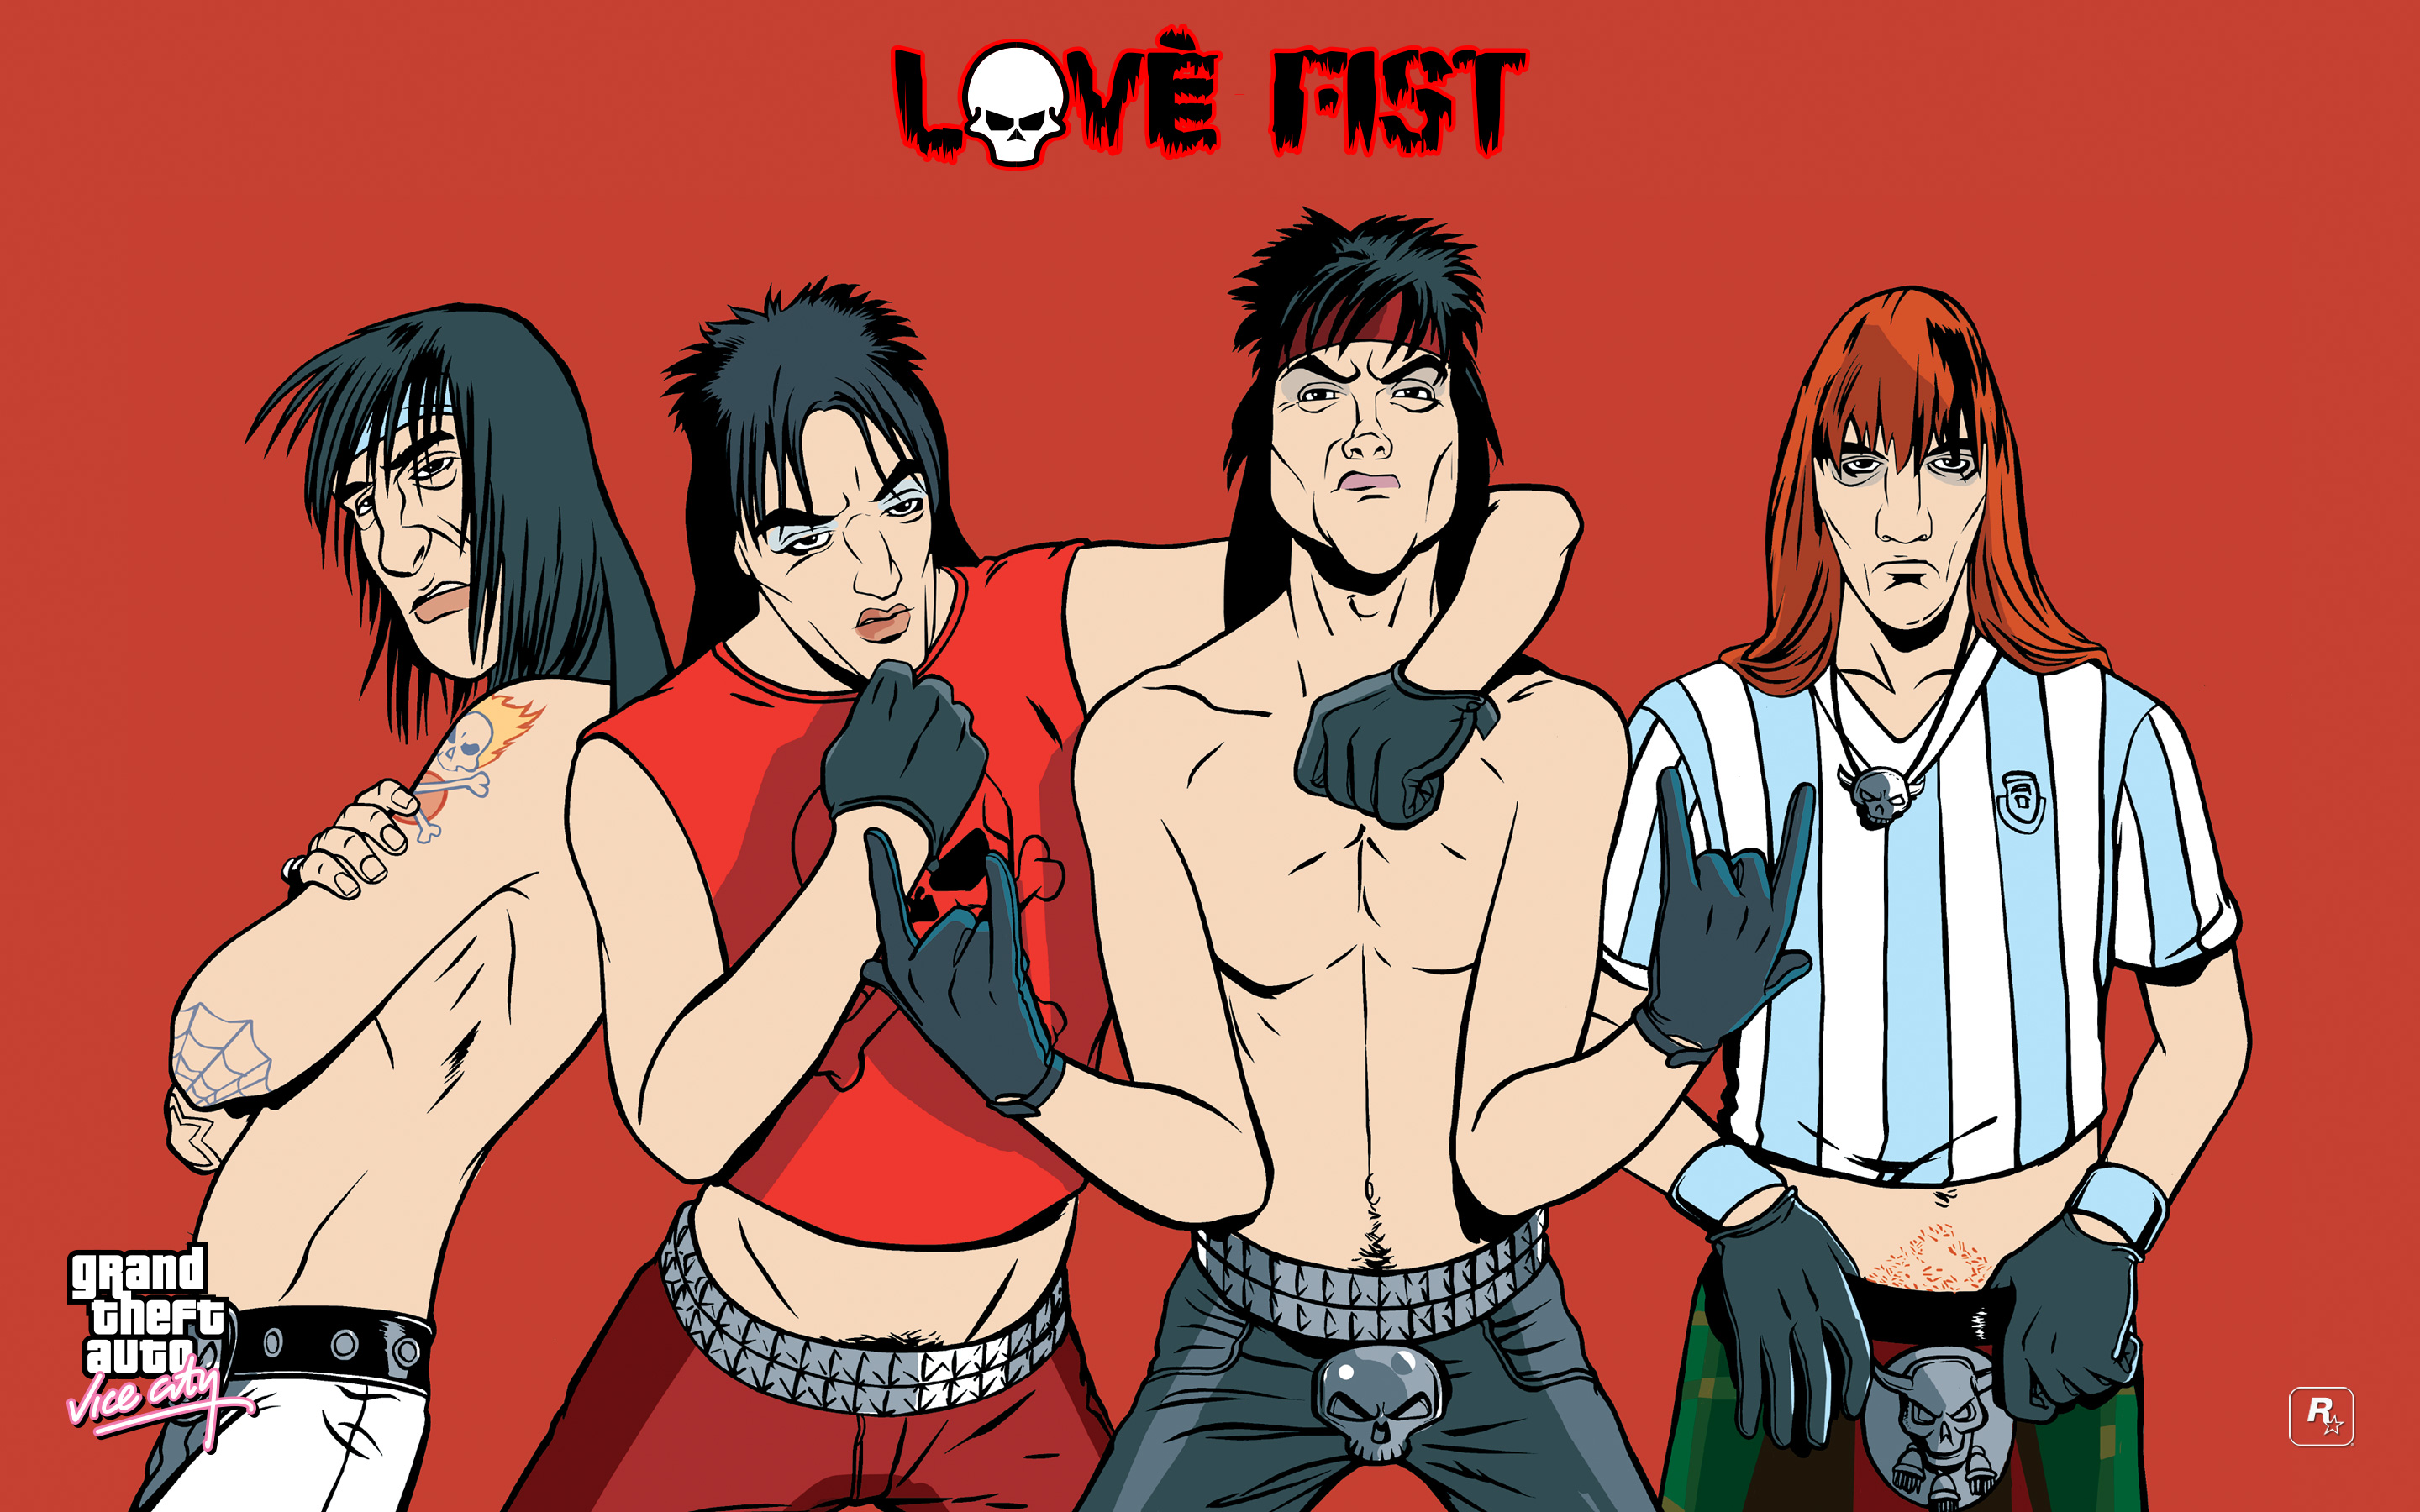 LoveFist-Artwork.jpg